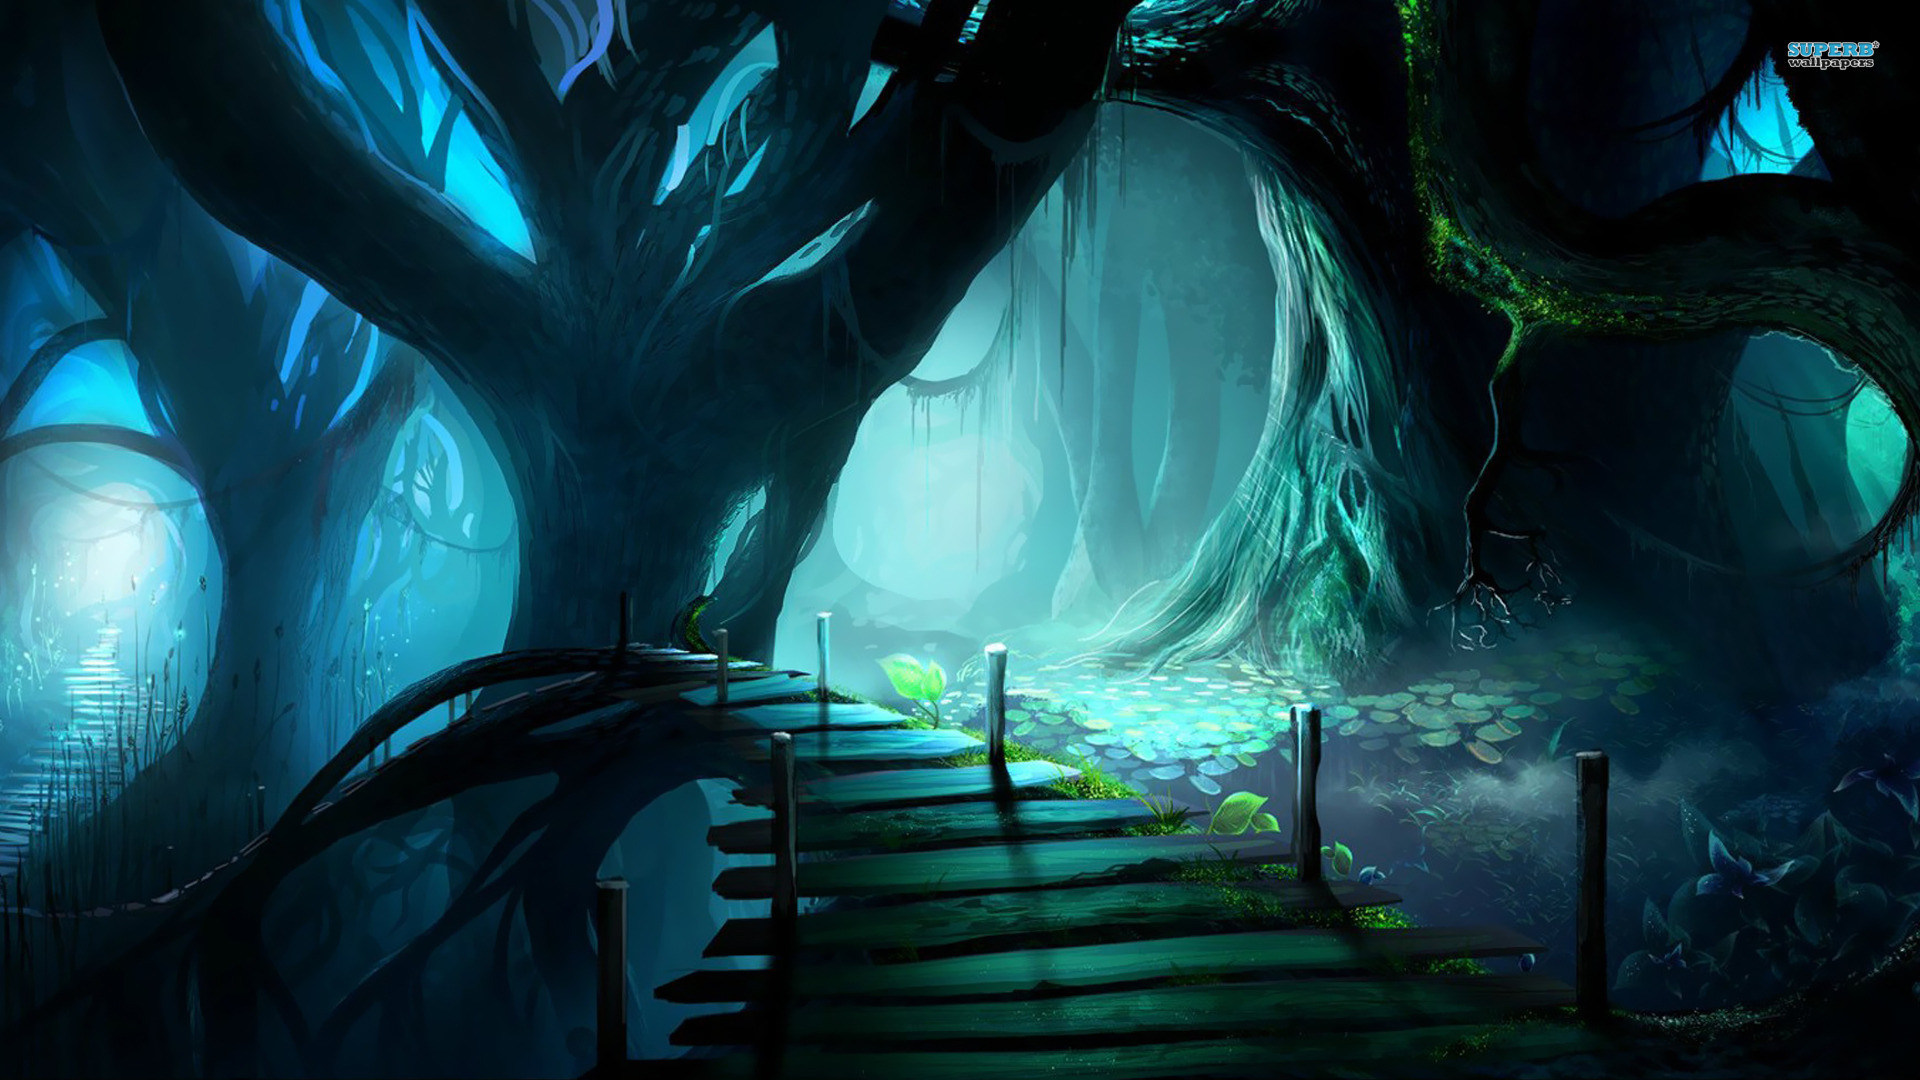 1920x1080 scary-forest-path-hd-wallpaper-585754.jpg (1920×